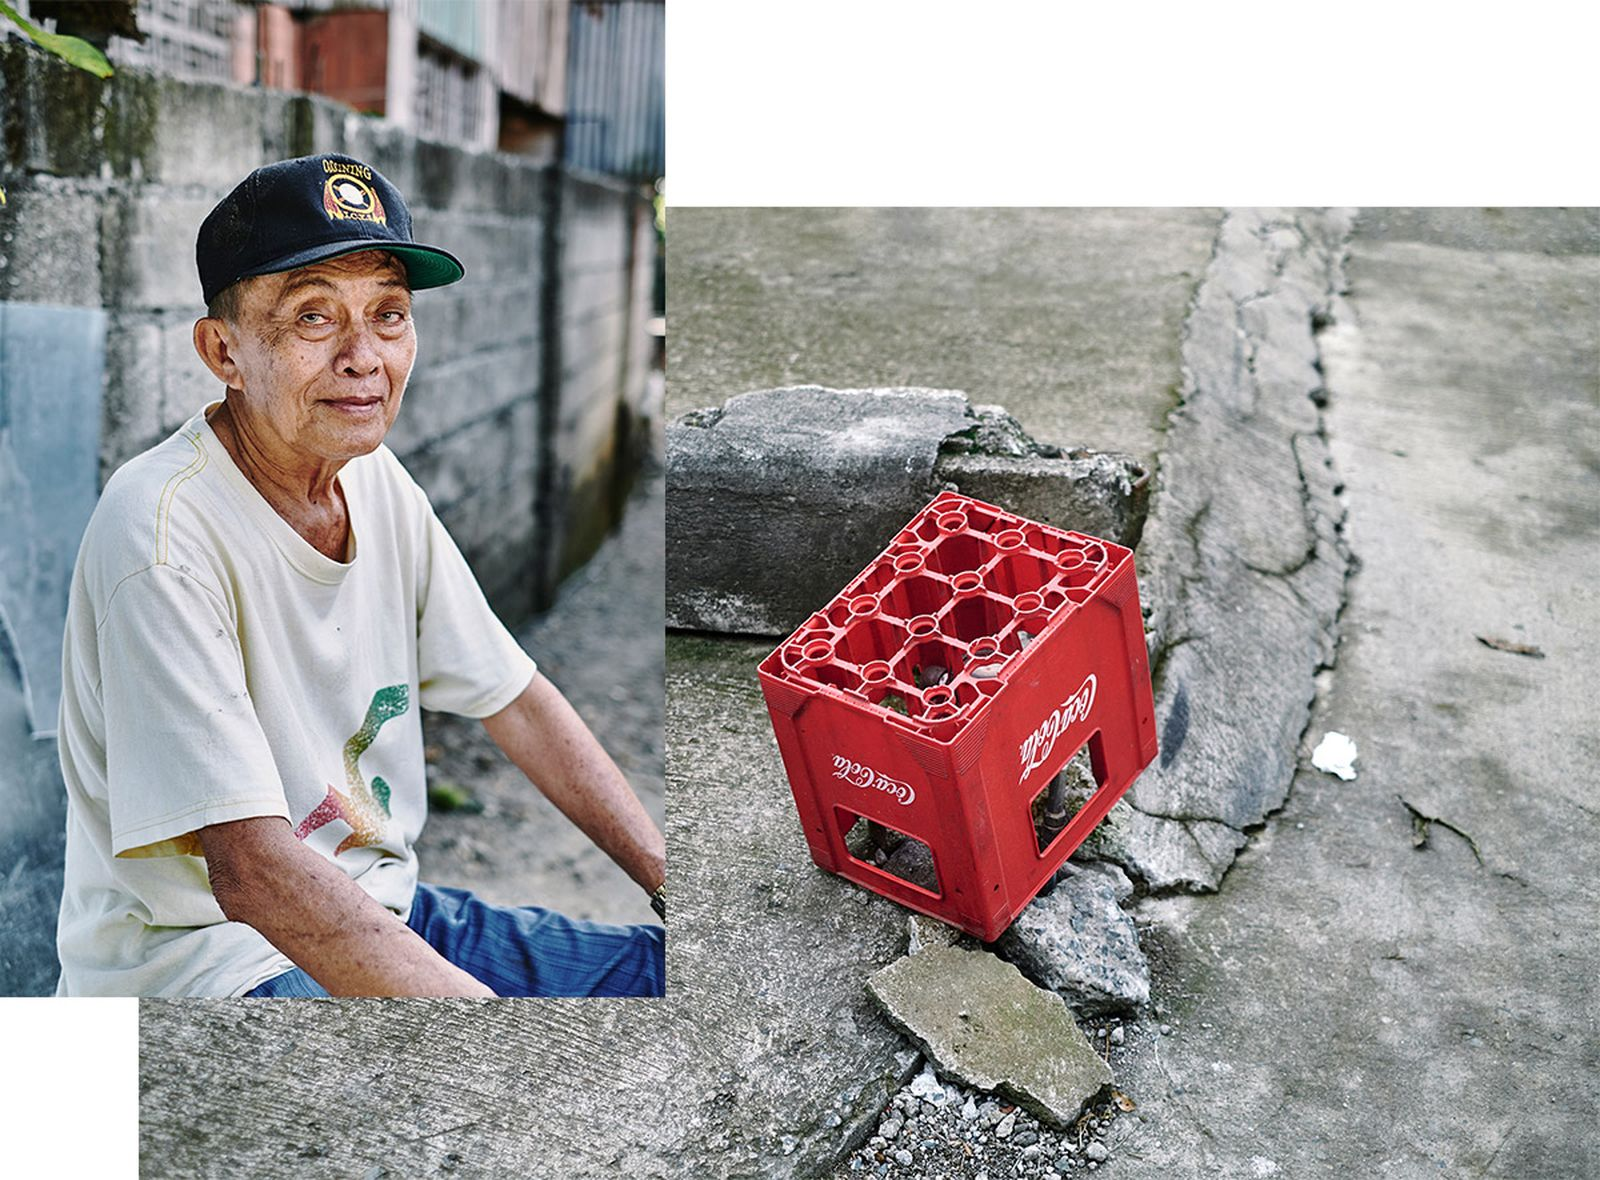 lester jones the philippines photography highsnobiety travel